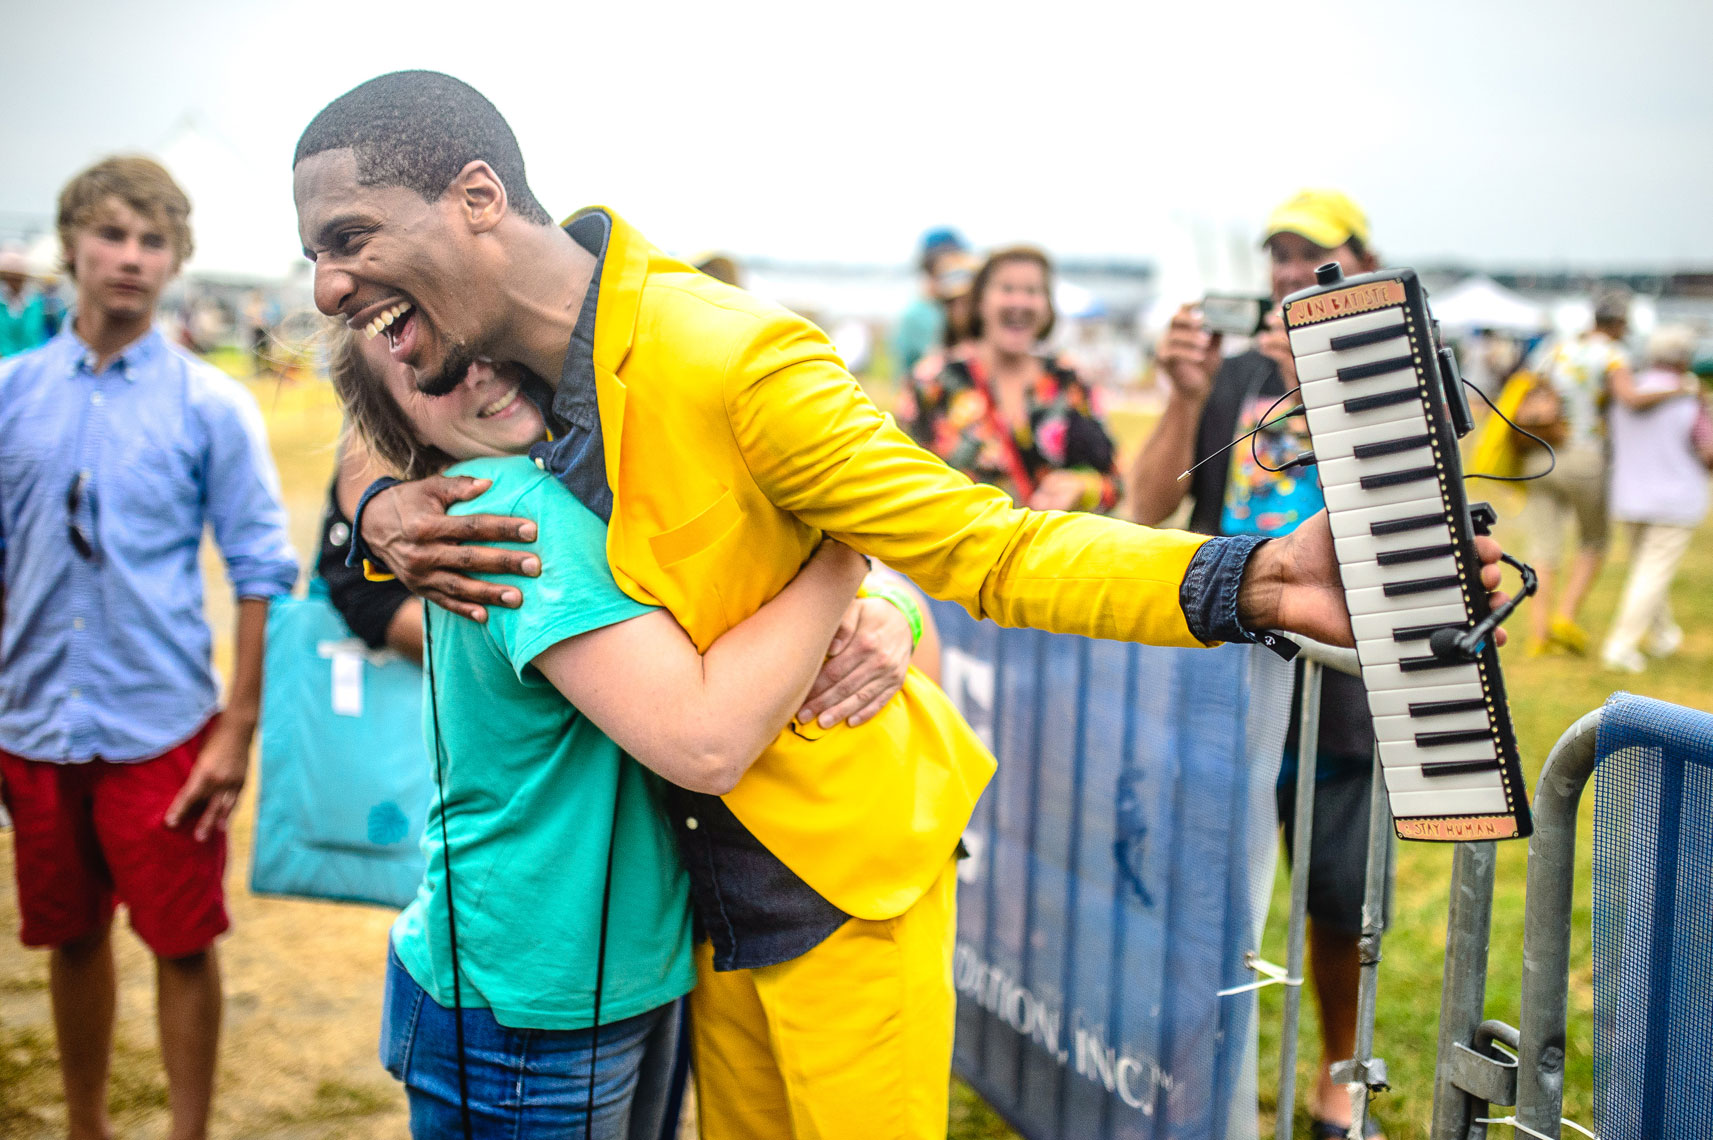 Jon Batiste and Stay Human at Newport Jazz